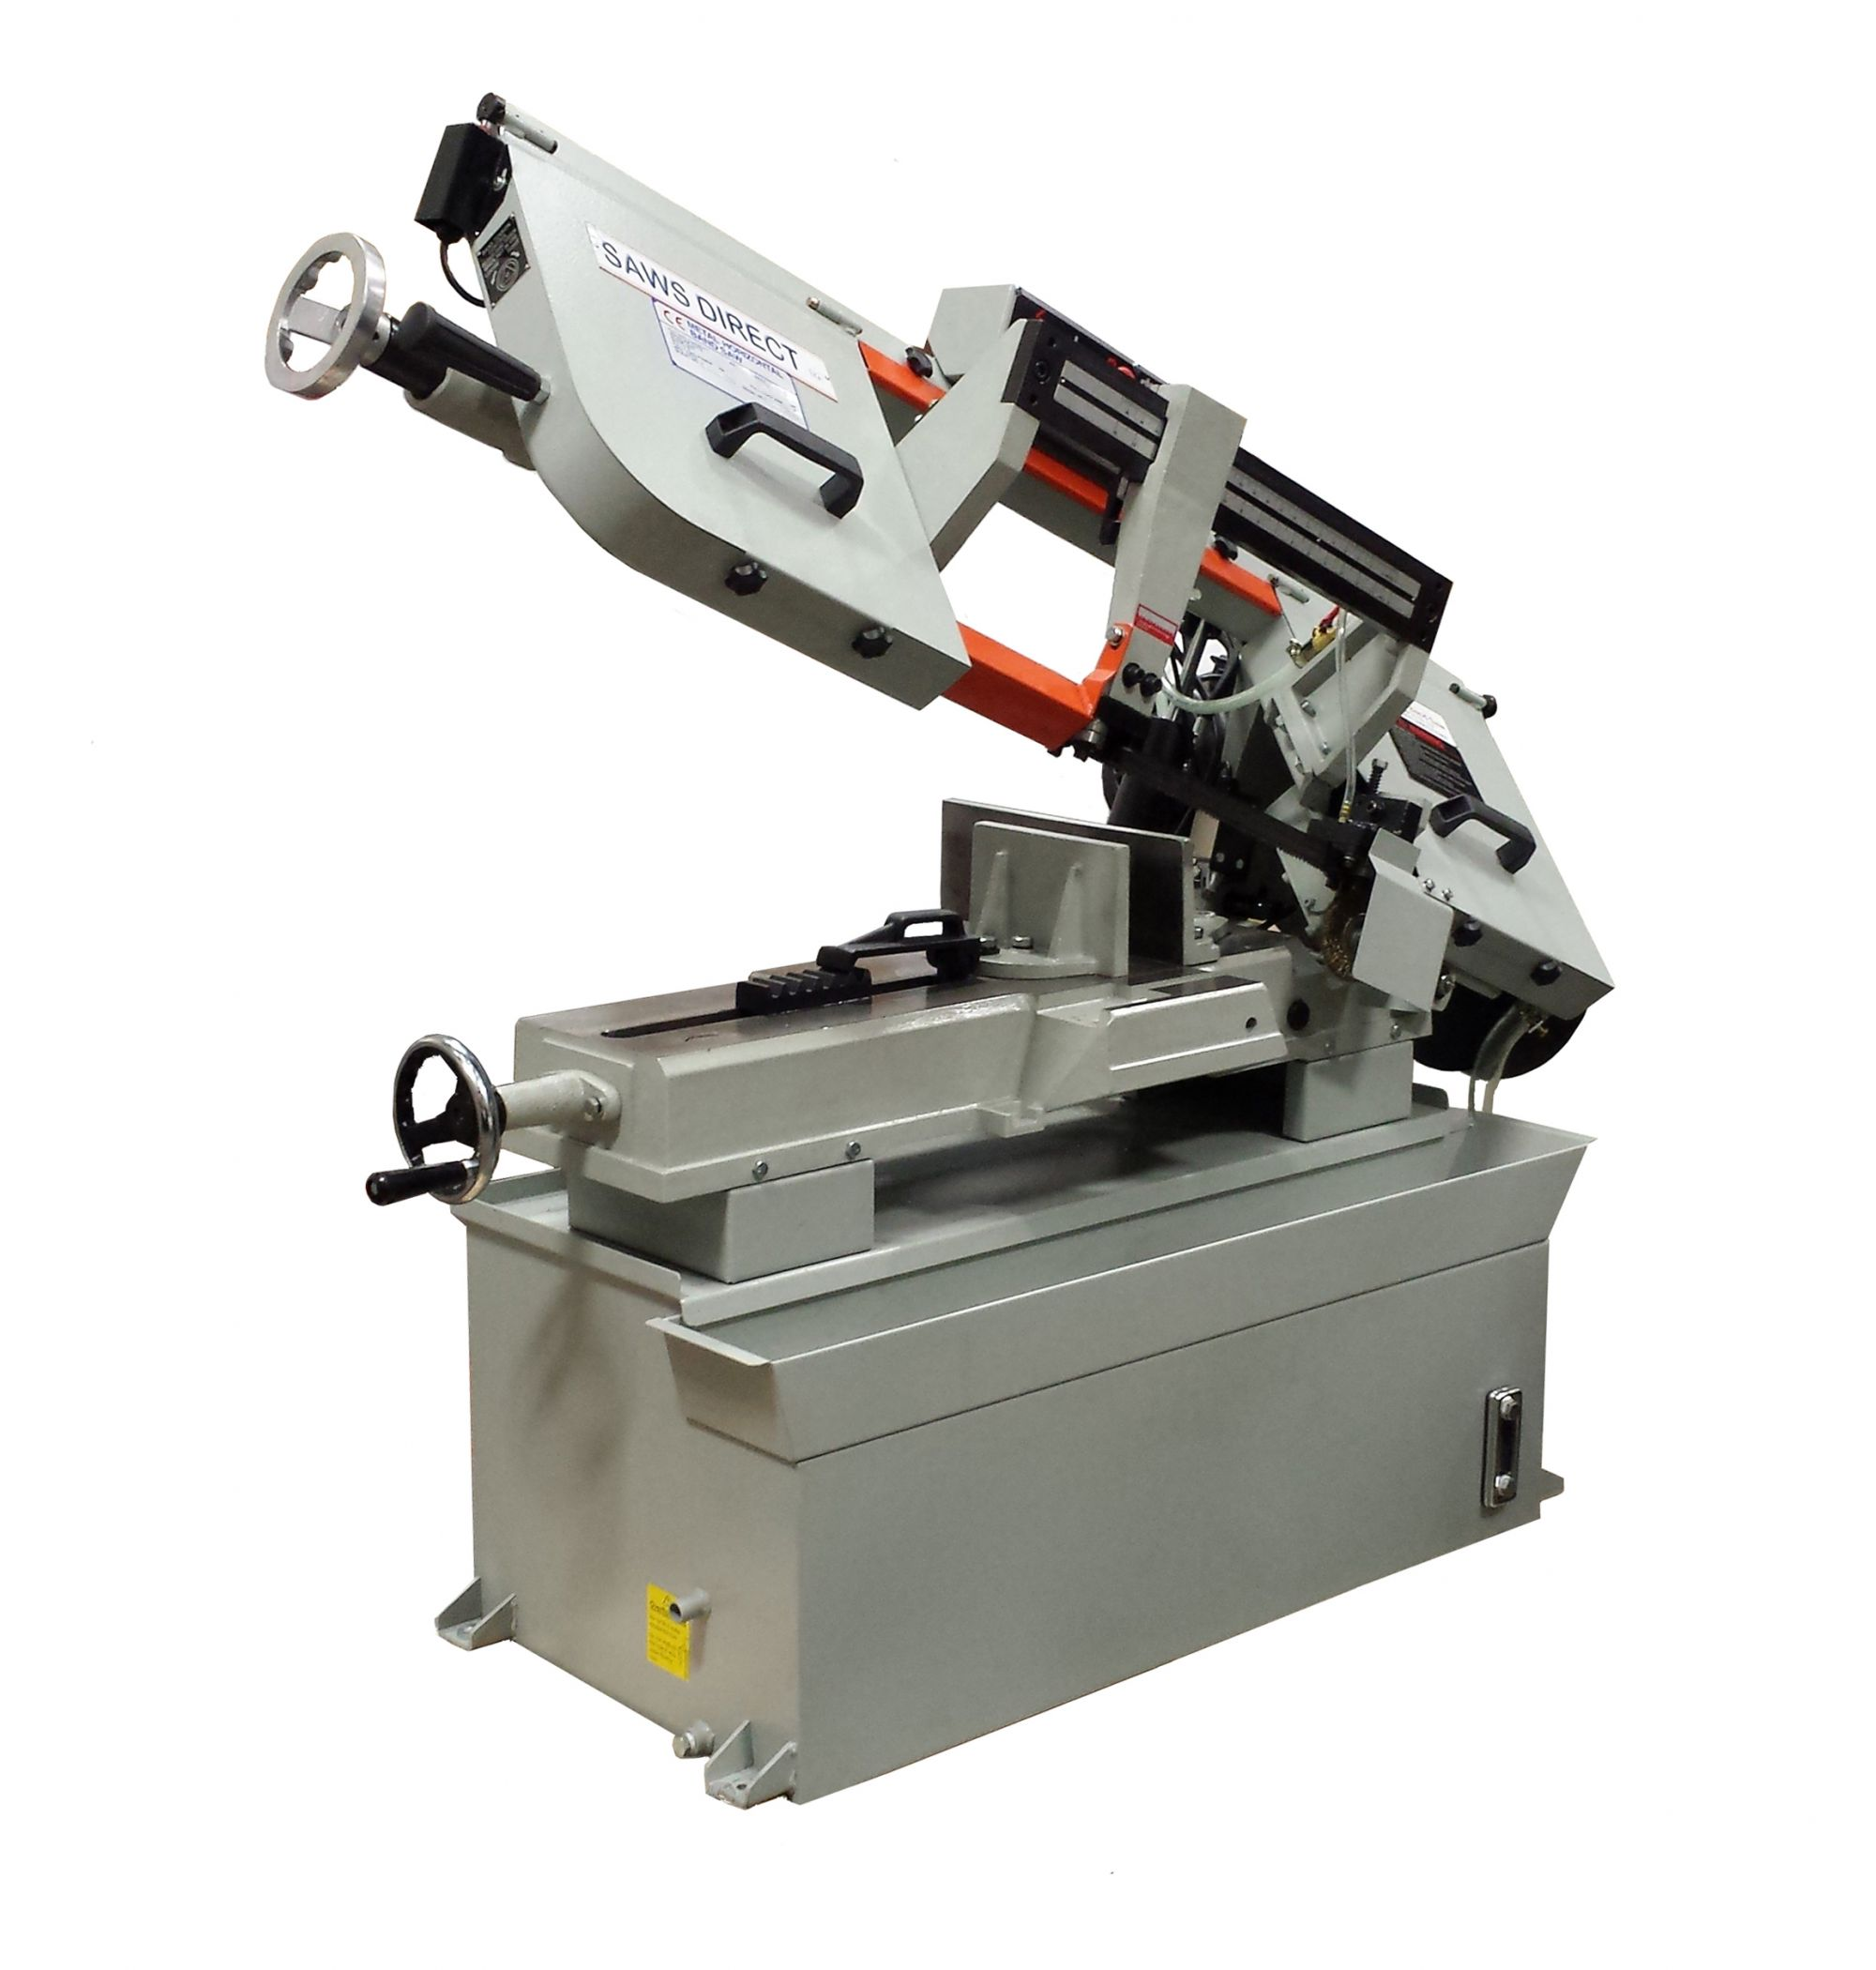 SD-916A Manual Band saw